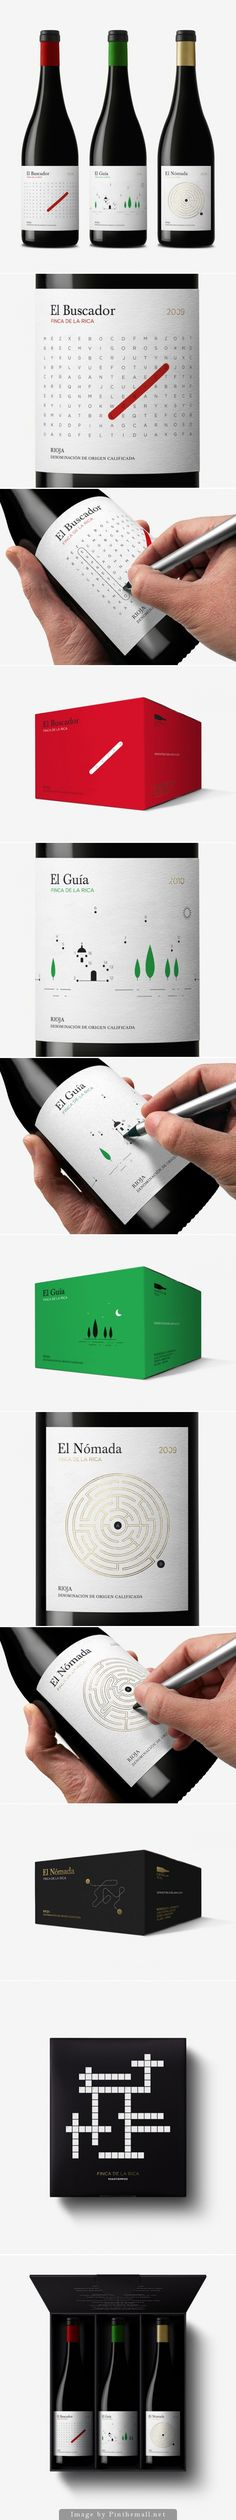 Finca de la Rica #wine #packaging by Dorian - http://www.packagingoftheworld.com/2014/11/finca-de-la-rica.html